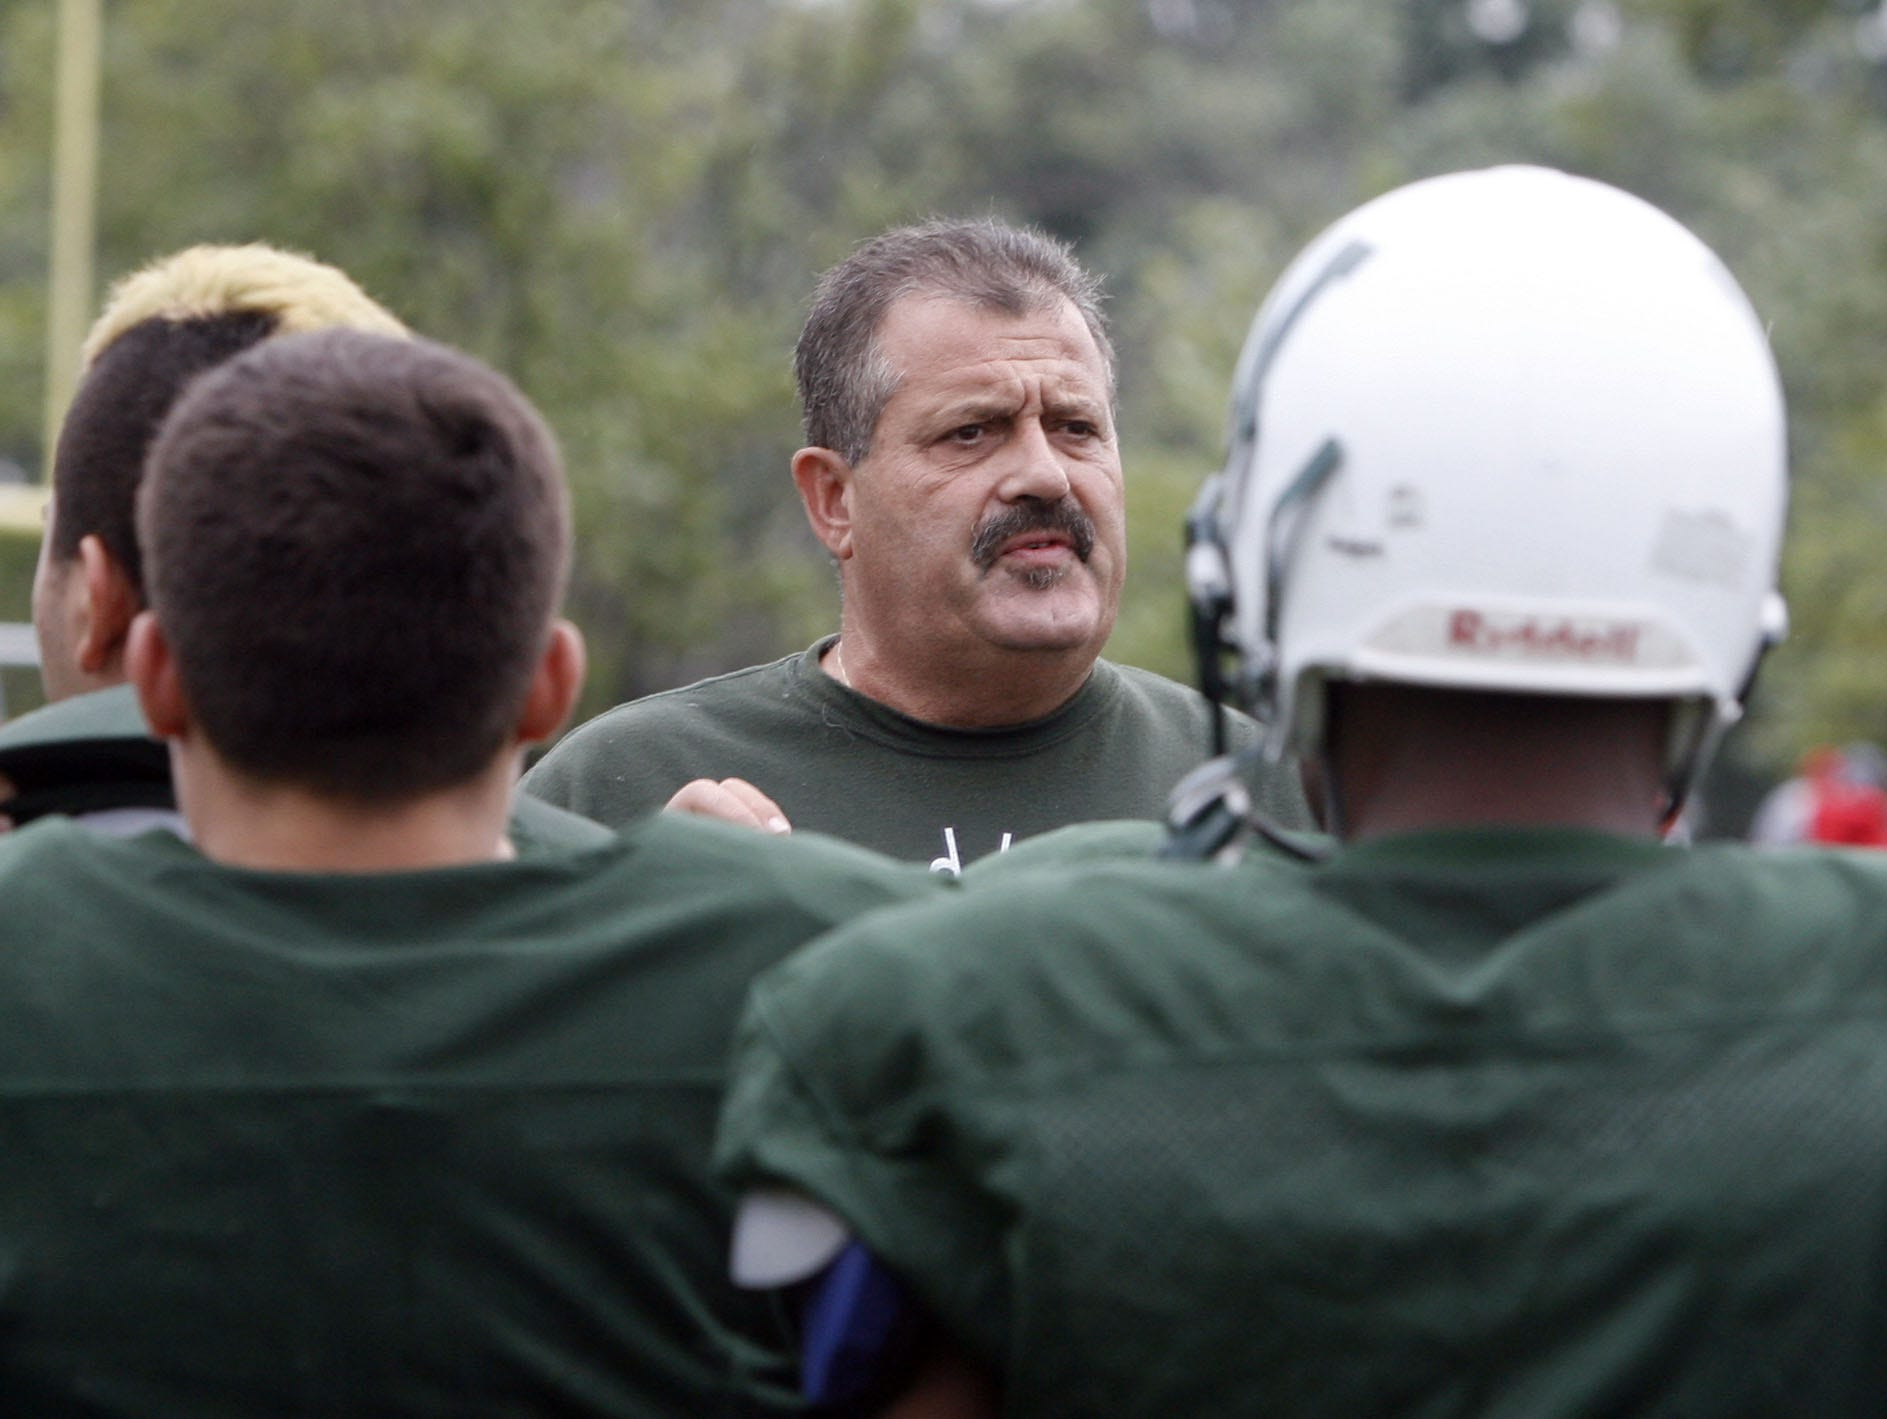 Woodlands football coach Mike Meade, pictured here in 2011, was named the Varsity Insider Week 2 Coach of the Week after his team beat Dobbs Ferry 33-0 in a rematch of the 2015 Class C championship game, which was won 35-0 by Dobbs Ferry.